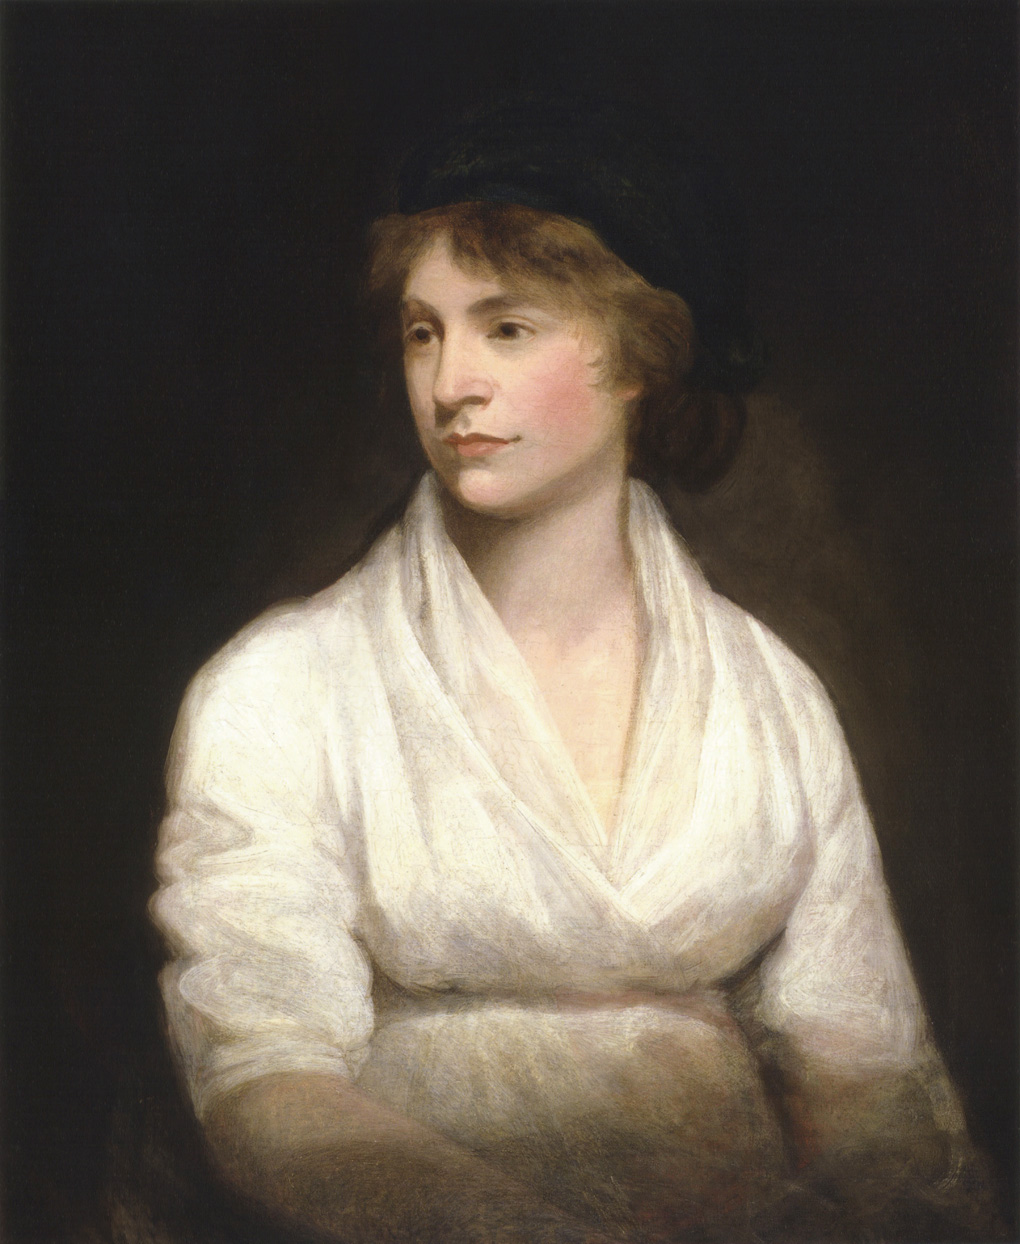 Mary Wollstonecraft Godwin (1759–97), mother-in-law of Percy Bysshe Shelley, early feminist and wife of the Enlightenment anarchist William Godwin [https://upload.wikimedia.org]